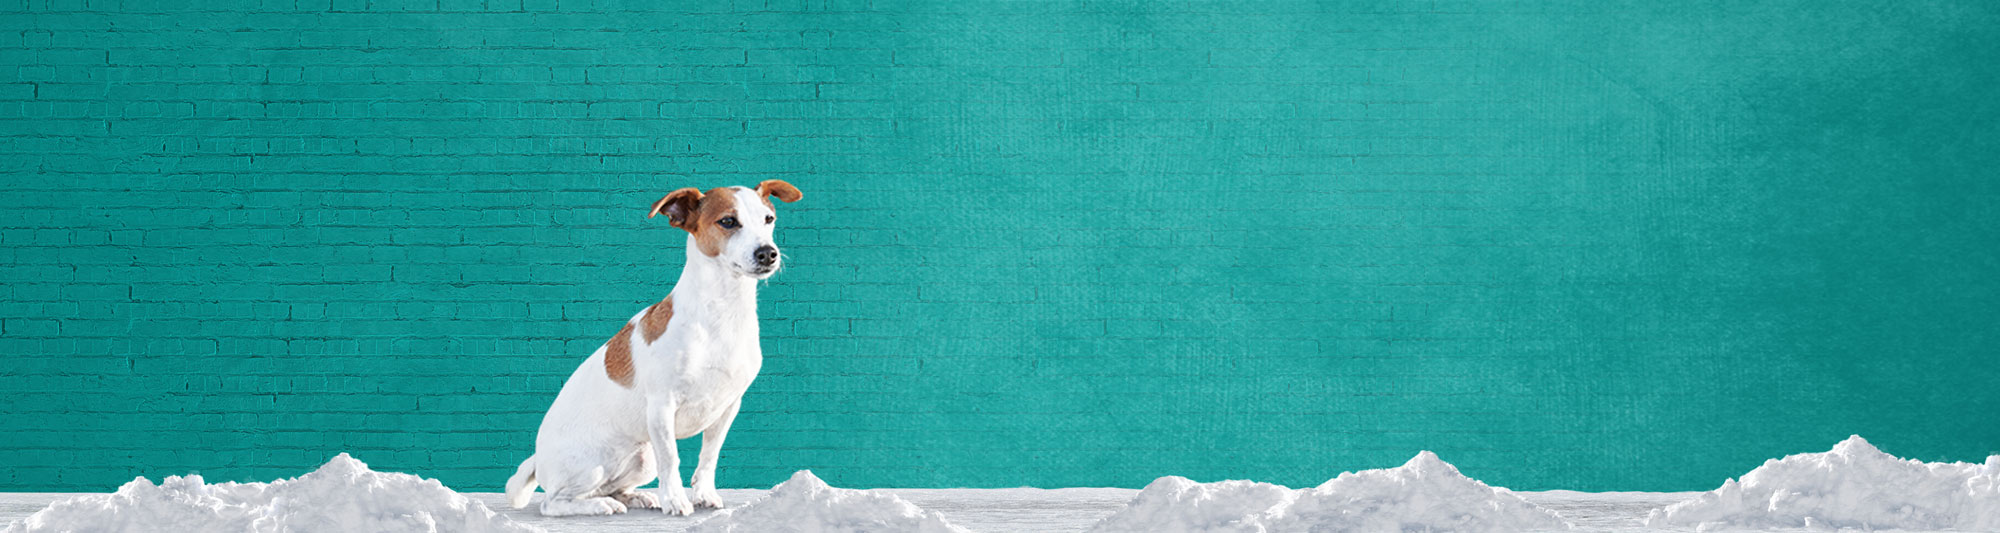 Dog sitting down on snow in front of a wall